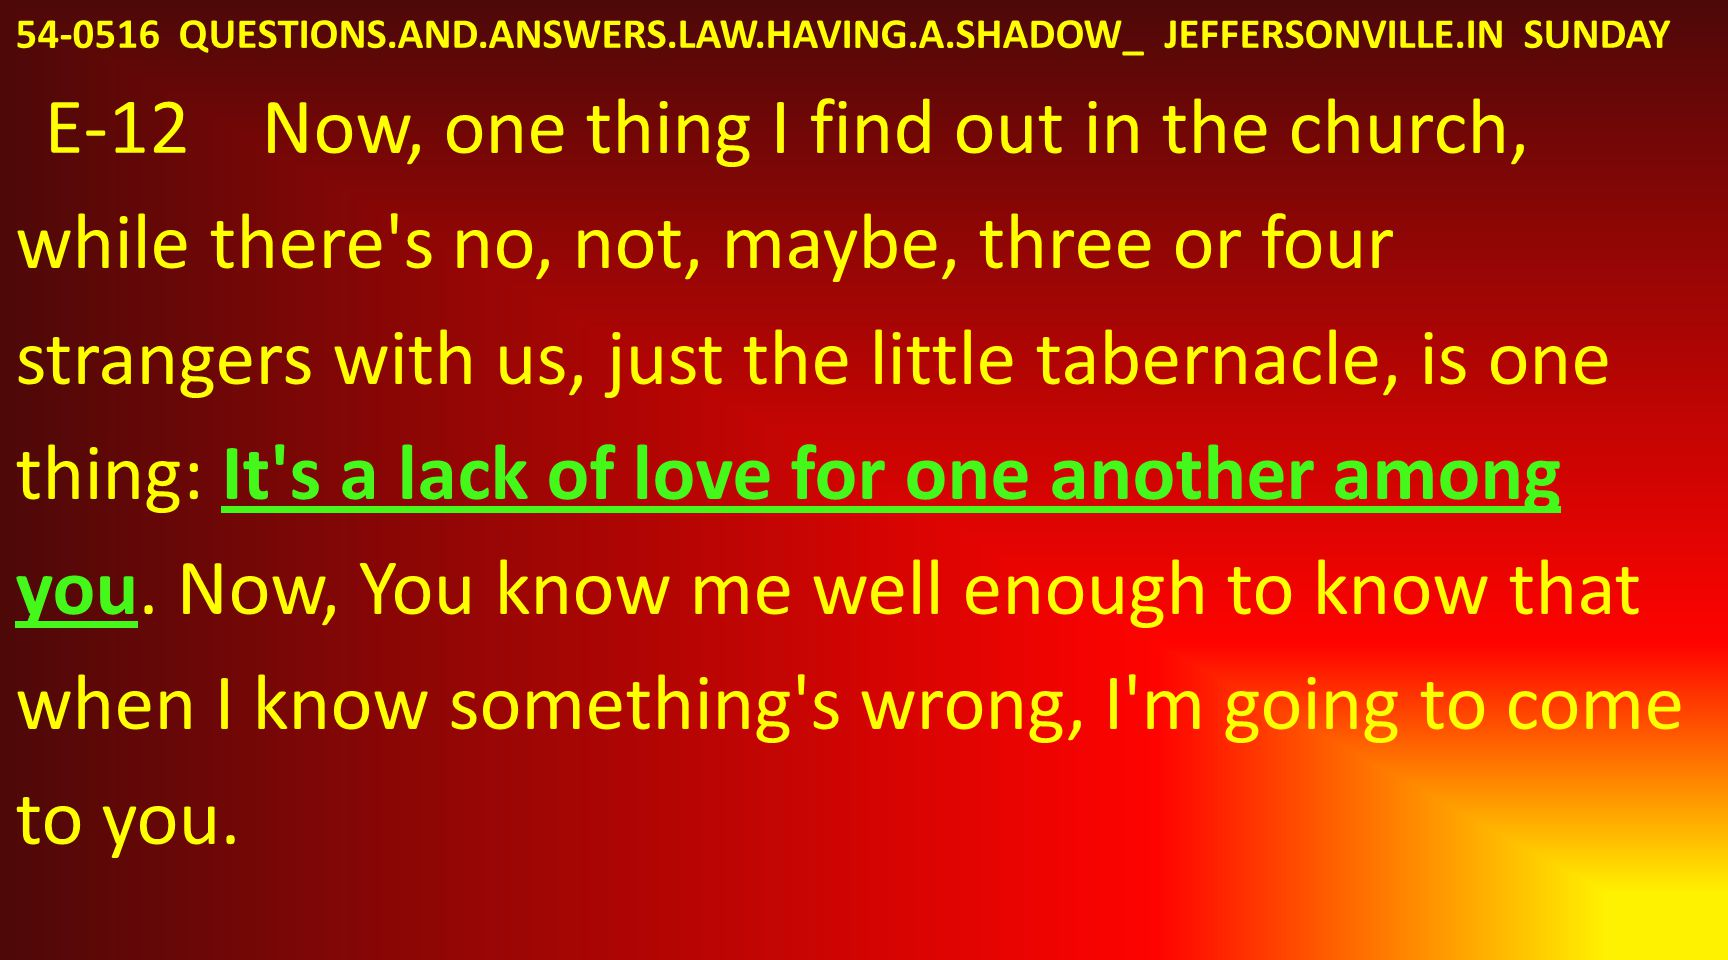 54-0516 QUESTIONS.AND.ANSWERS.LAW.HAVING.A.SHADOW_ JEFFERSONVILLE.IN SUNDAY E-12 Now, one thing I find out in the church, while there s no, not, maybe, three or four strangers with us, just the little tabernacle, is one thing: It s a lack of love for one another among you.